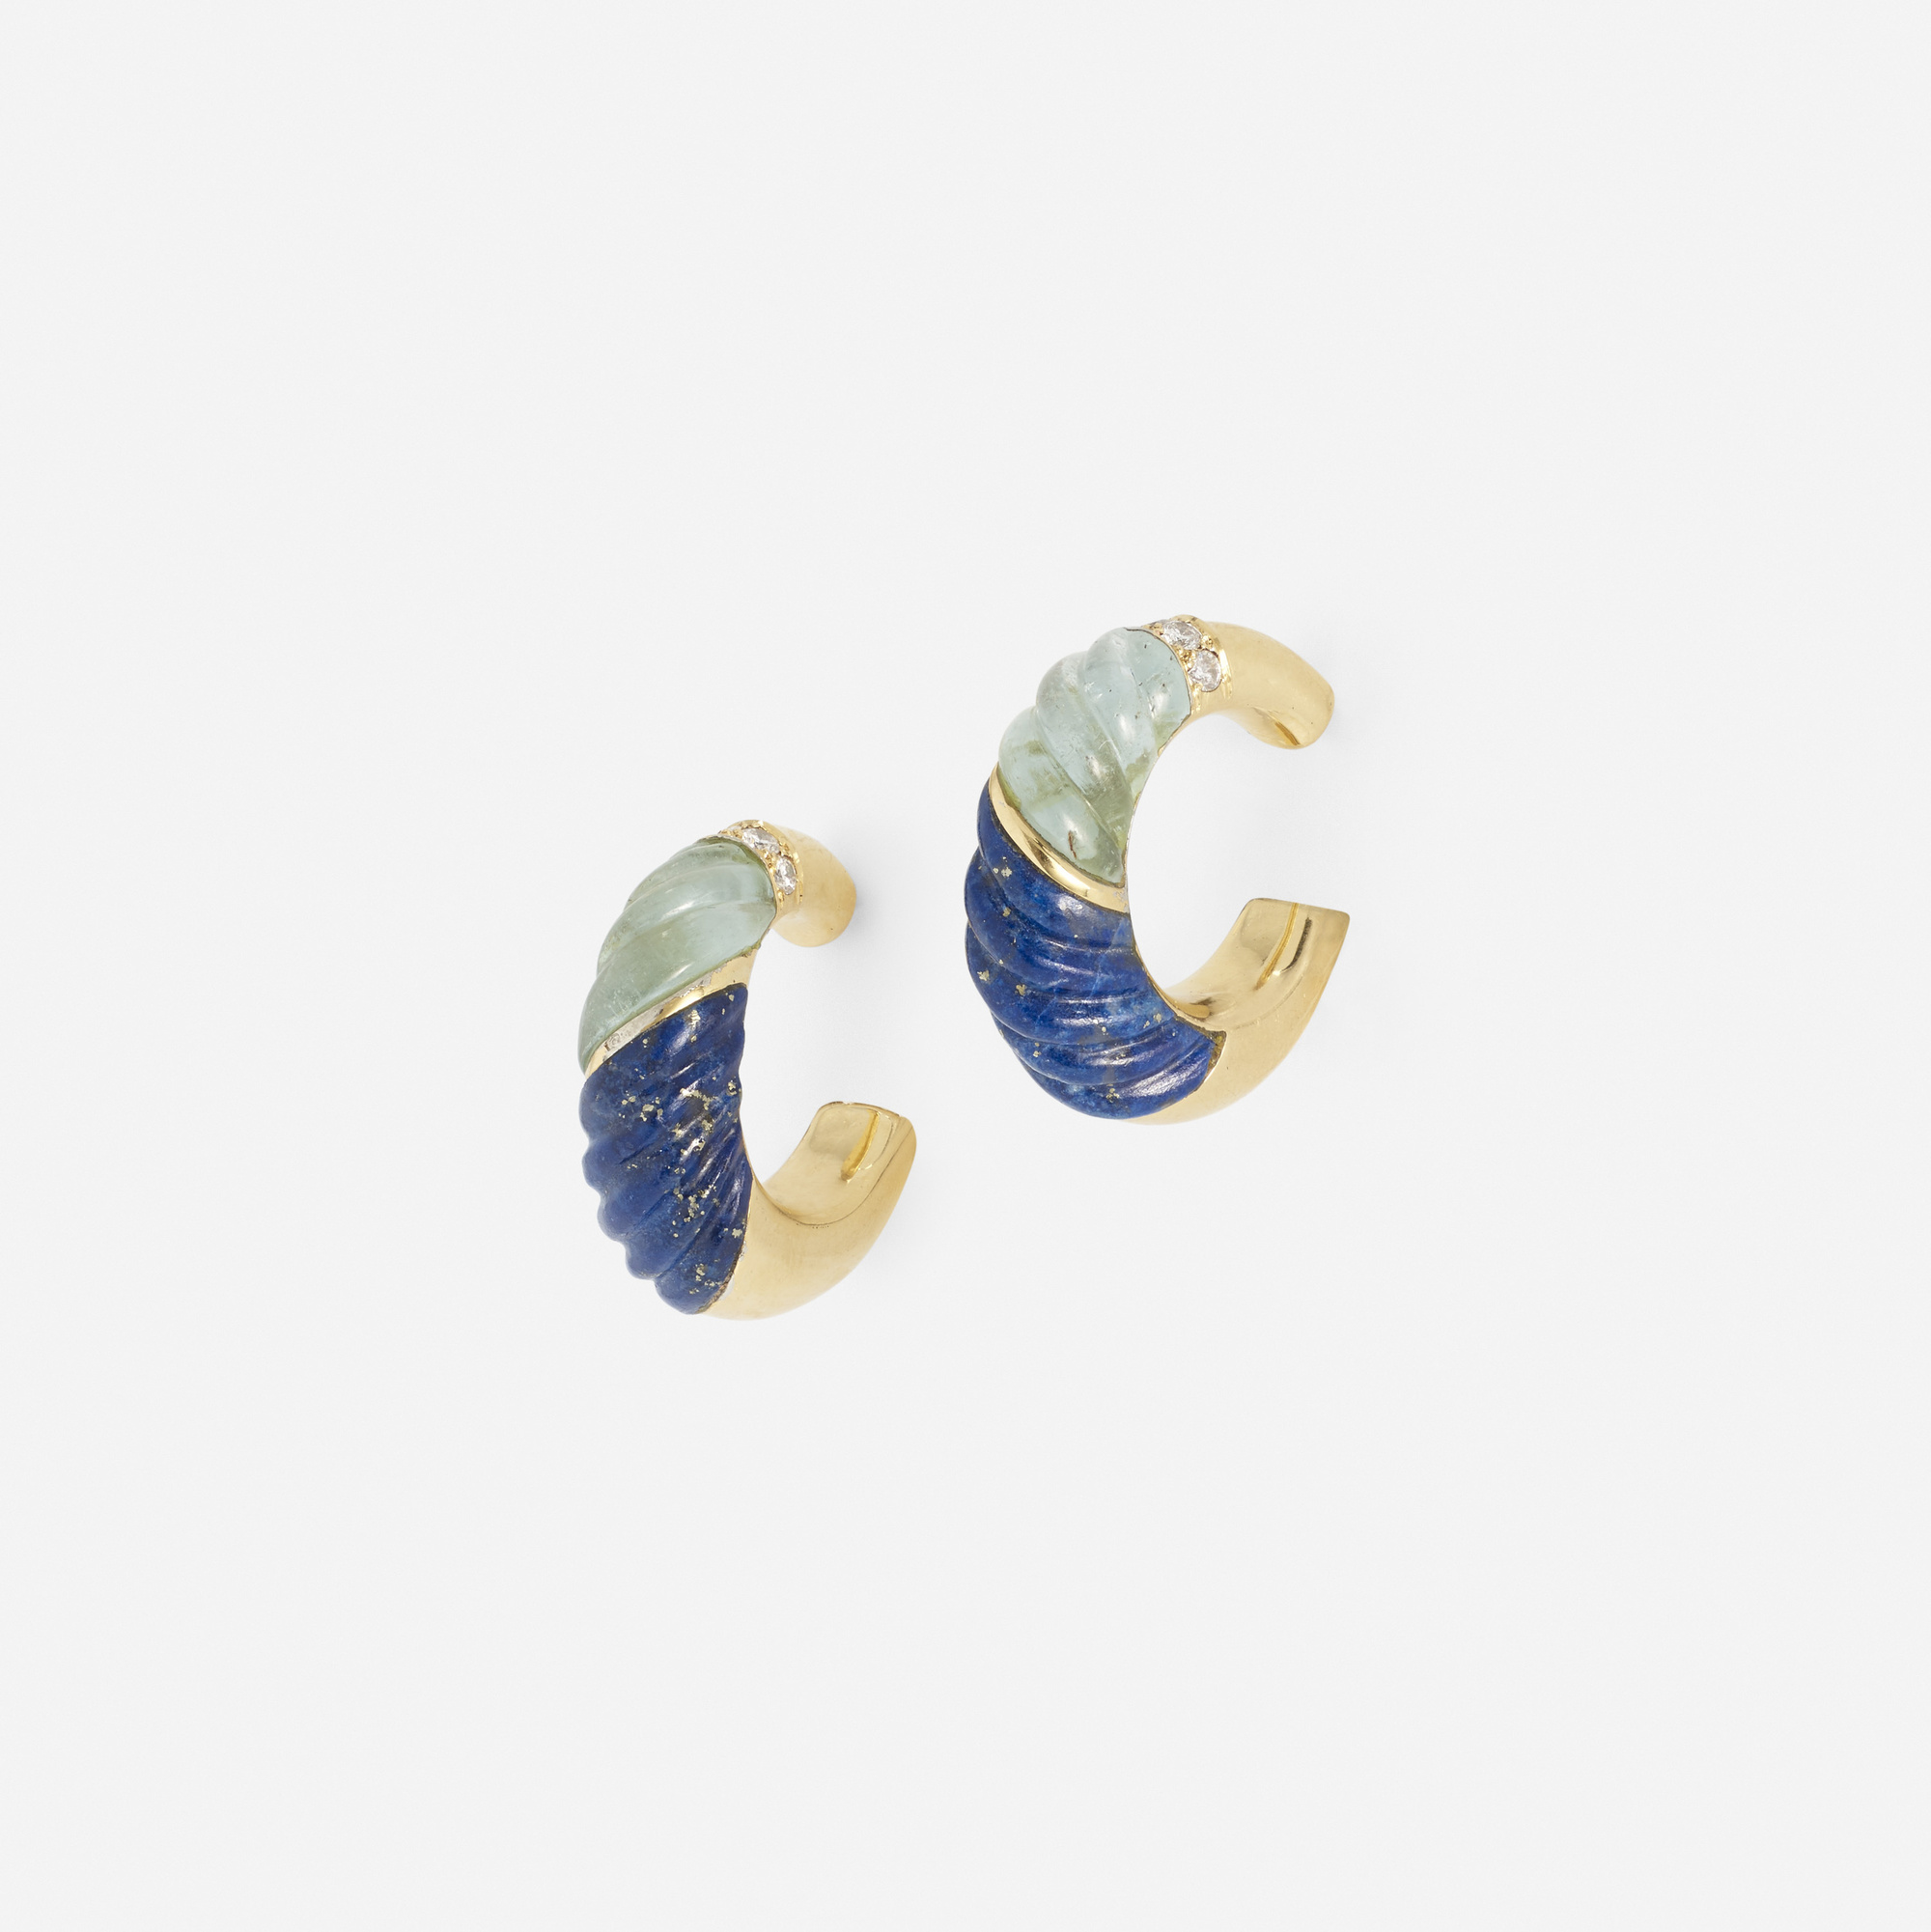 193: Van Cleef & Arpels / A pair of gold, diamond, lapis lazuli and aquamarine earrings (1 of 1)